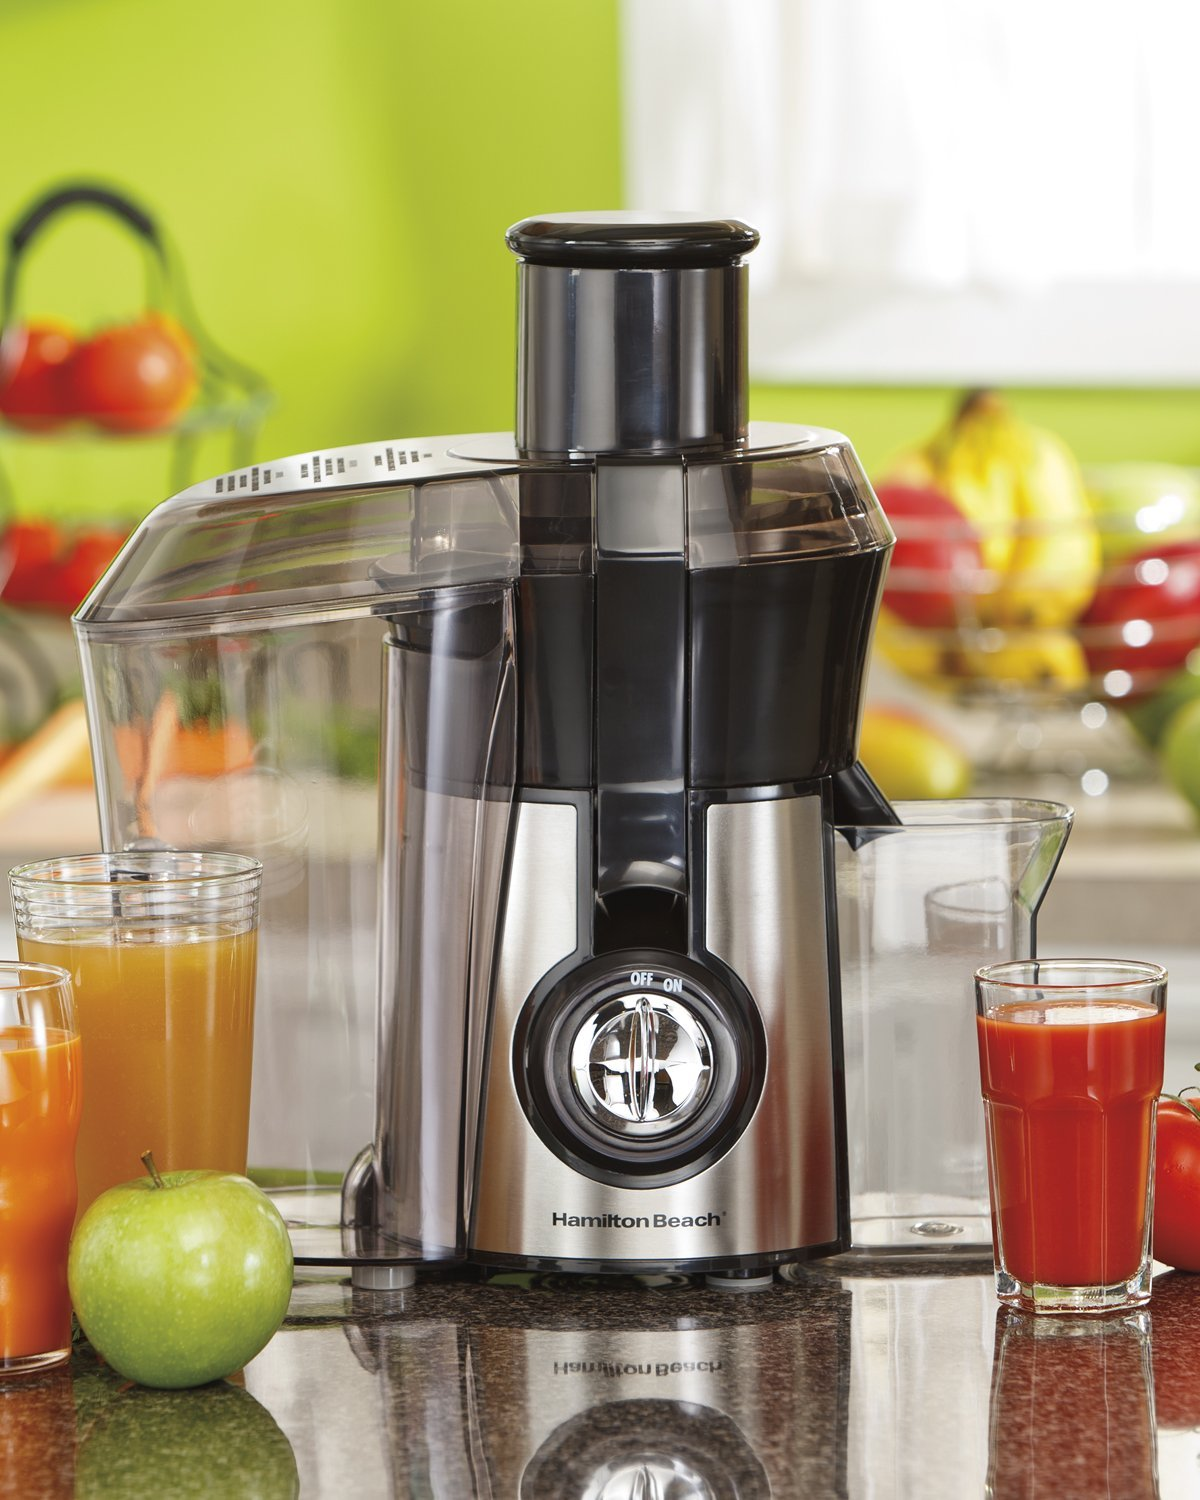 Enter For A Chance To Win A Hamilton Beach Juicer